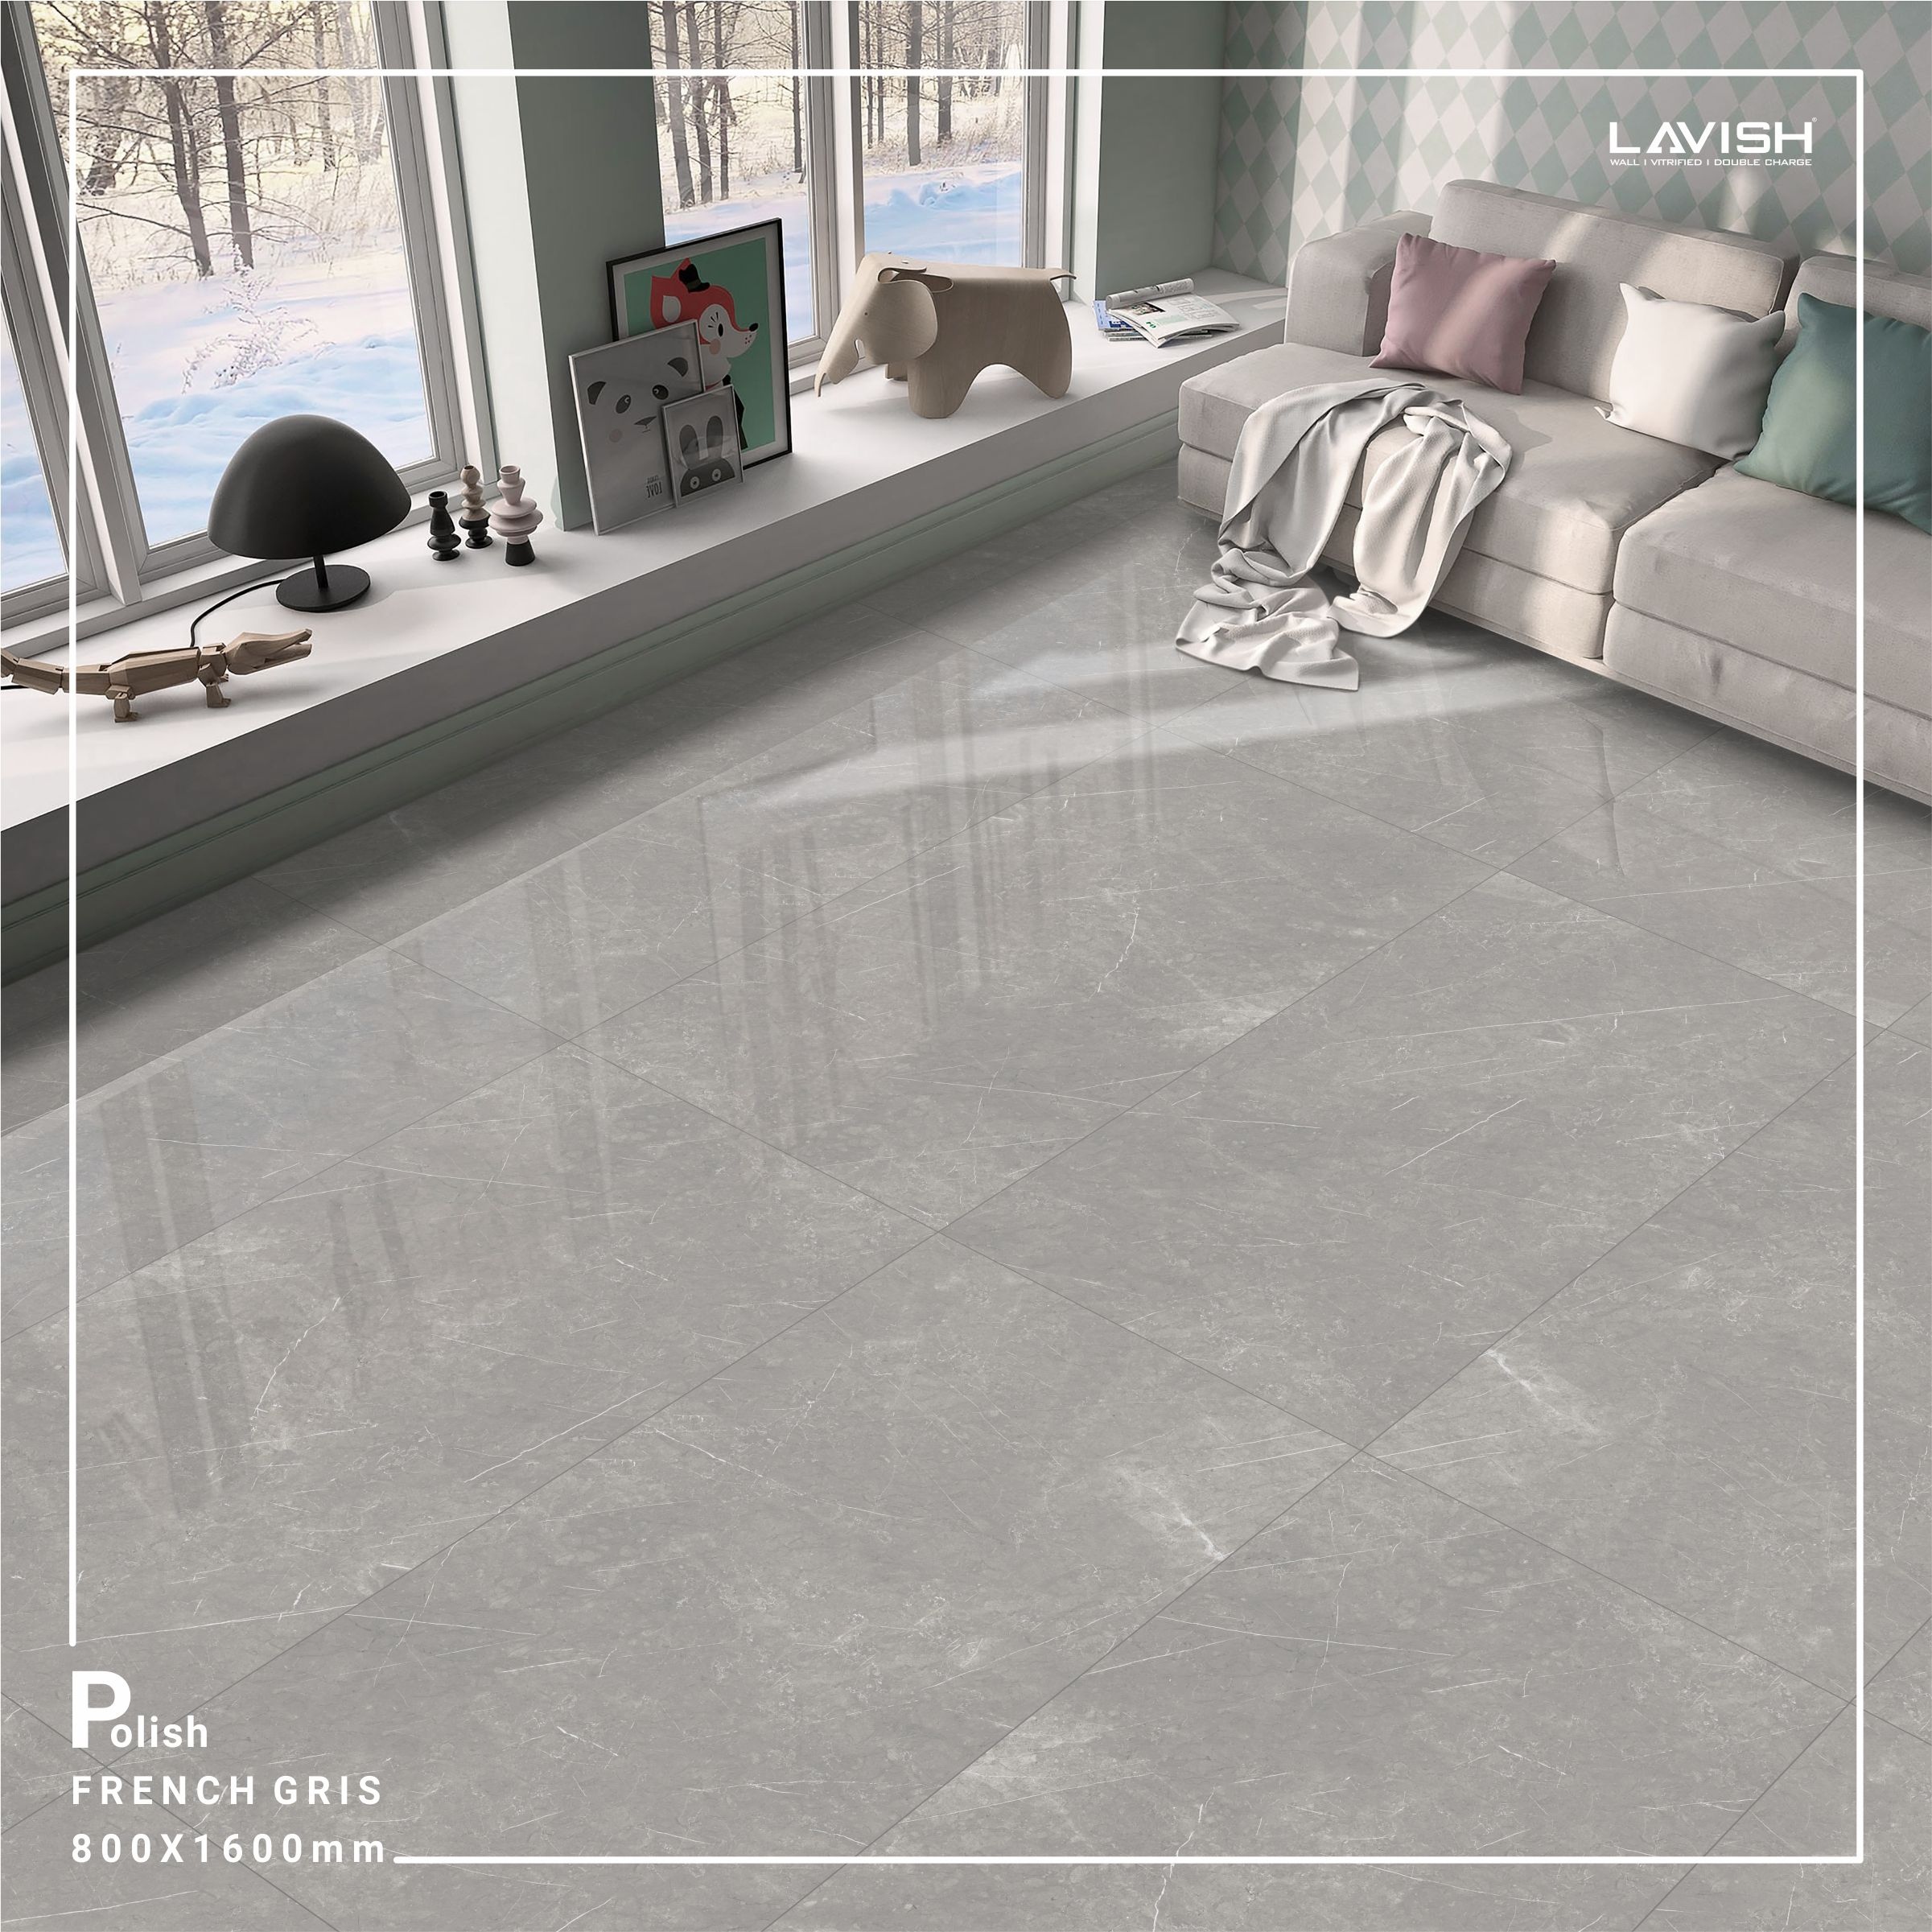 Design Your Living Room With Polish French Gris 800x1600mm In 2020 Tile Floor Living Room Living Room Tiles Tile Manufacturers